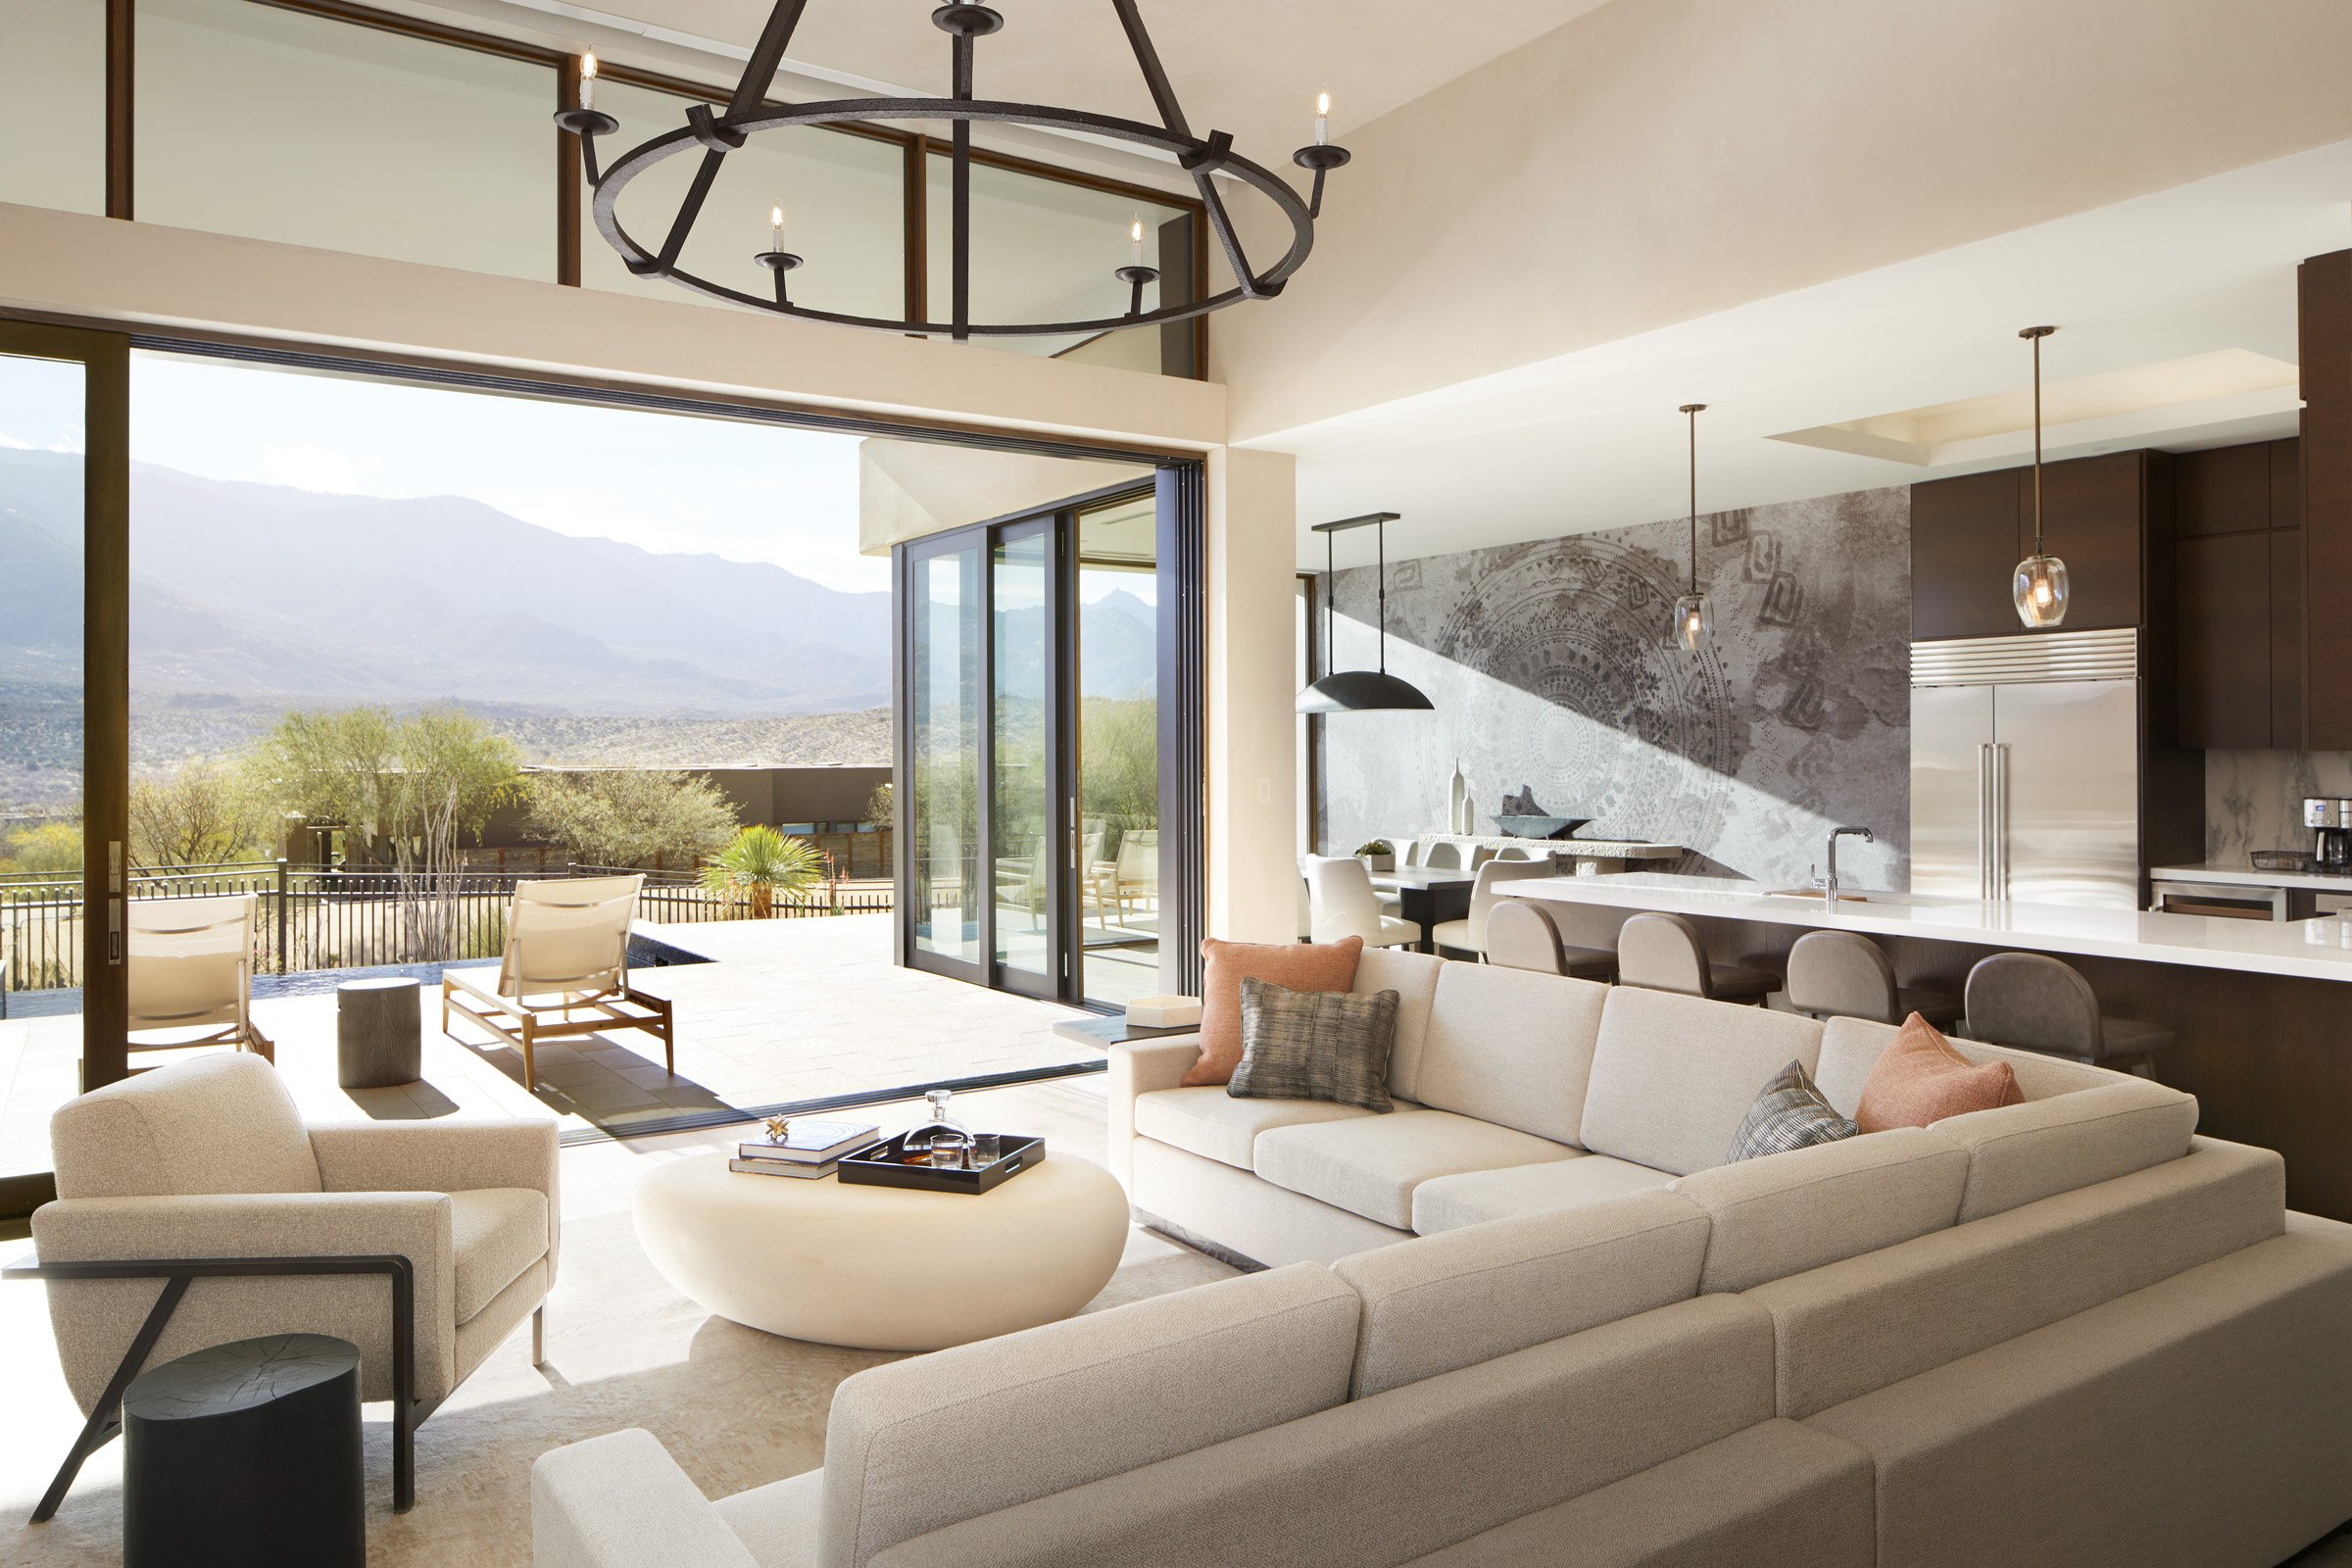 Interior of one of our exclusive resort retreats in Tucson, AZ